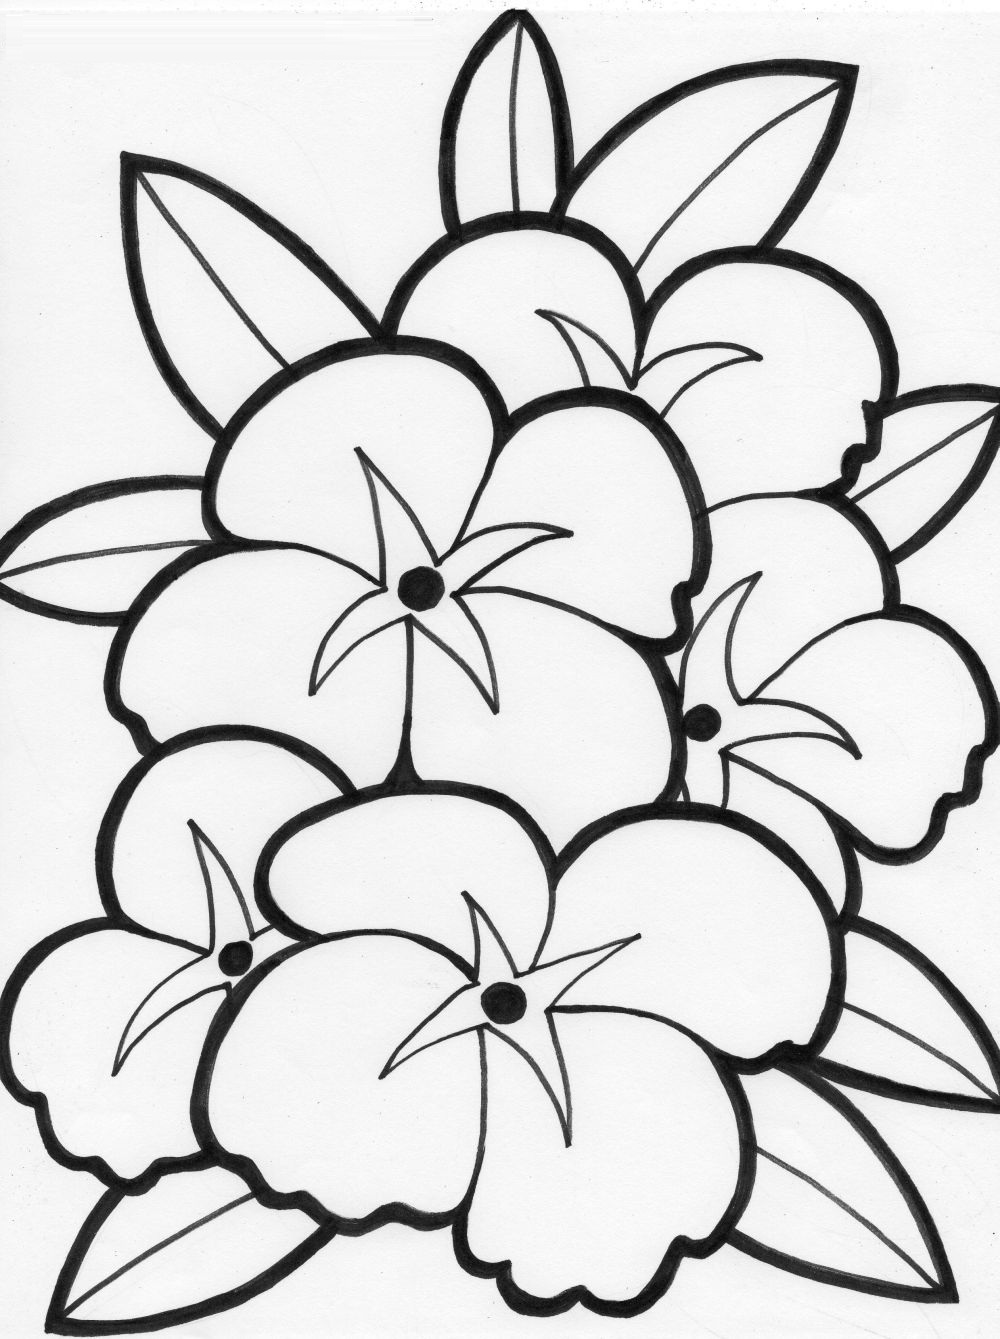 Printable Flower Coloring Pages For Kids at GetDrawings.com | Free ...